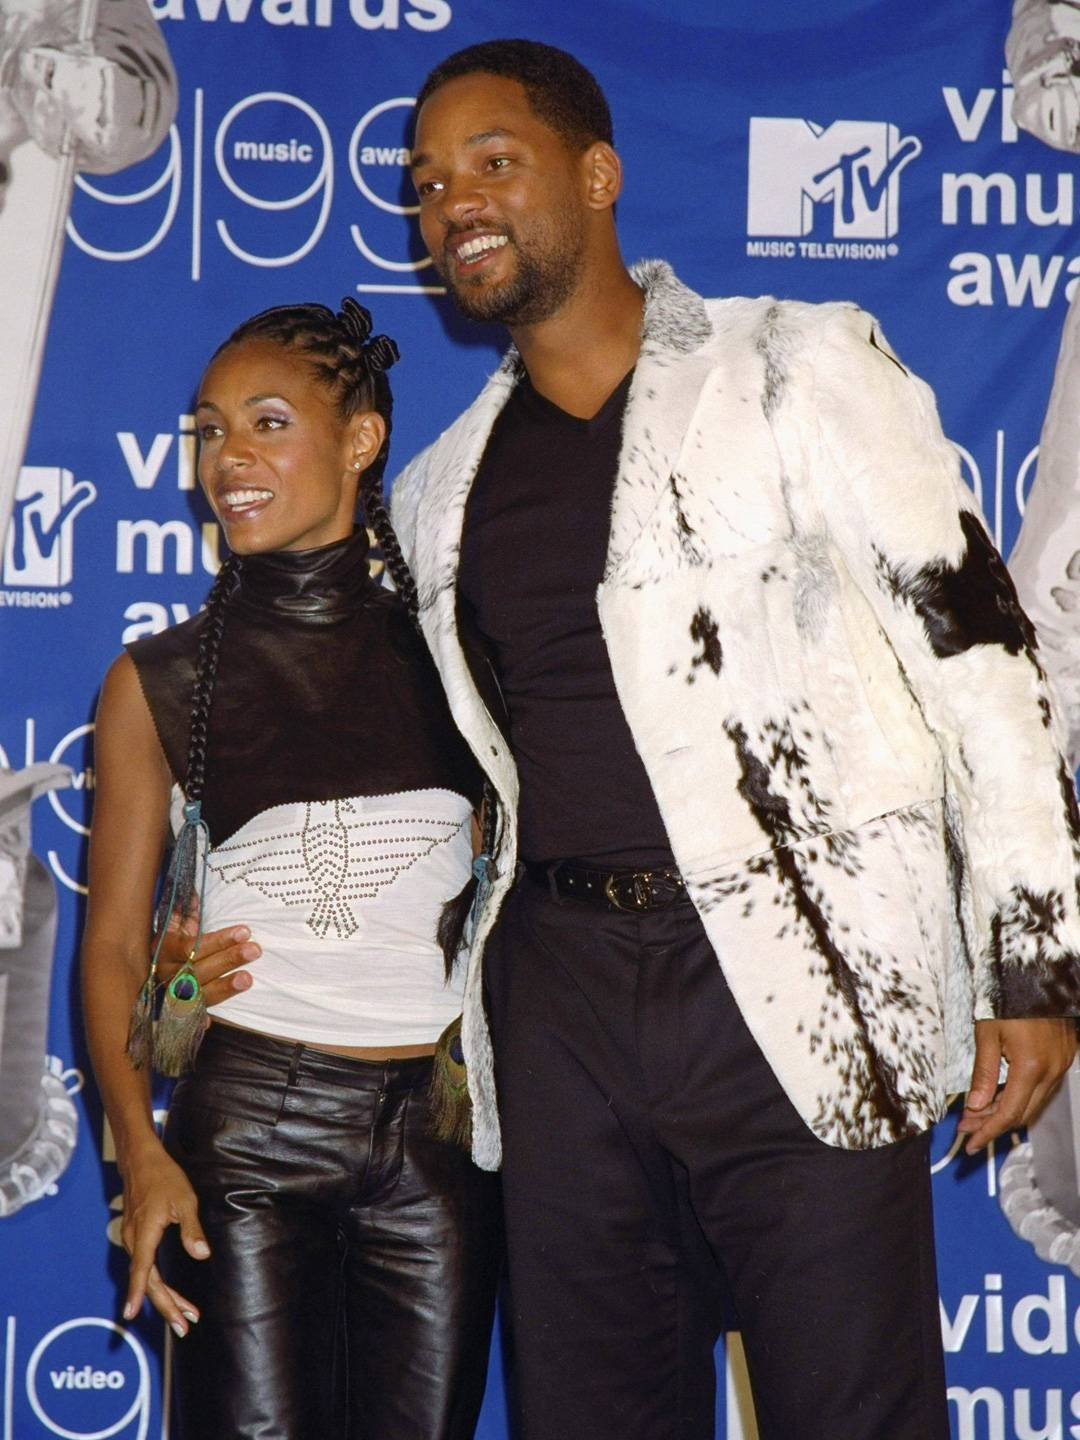 MTV Video Music Awards 2021   Are These MTV VMA 90s Looks Making a Comeback?   Jada Pinkett Smith and Will Smith   1080x1440